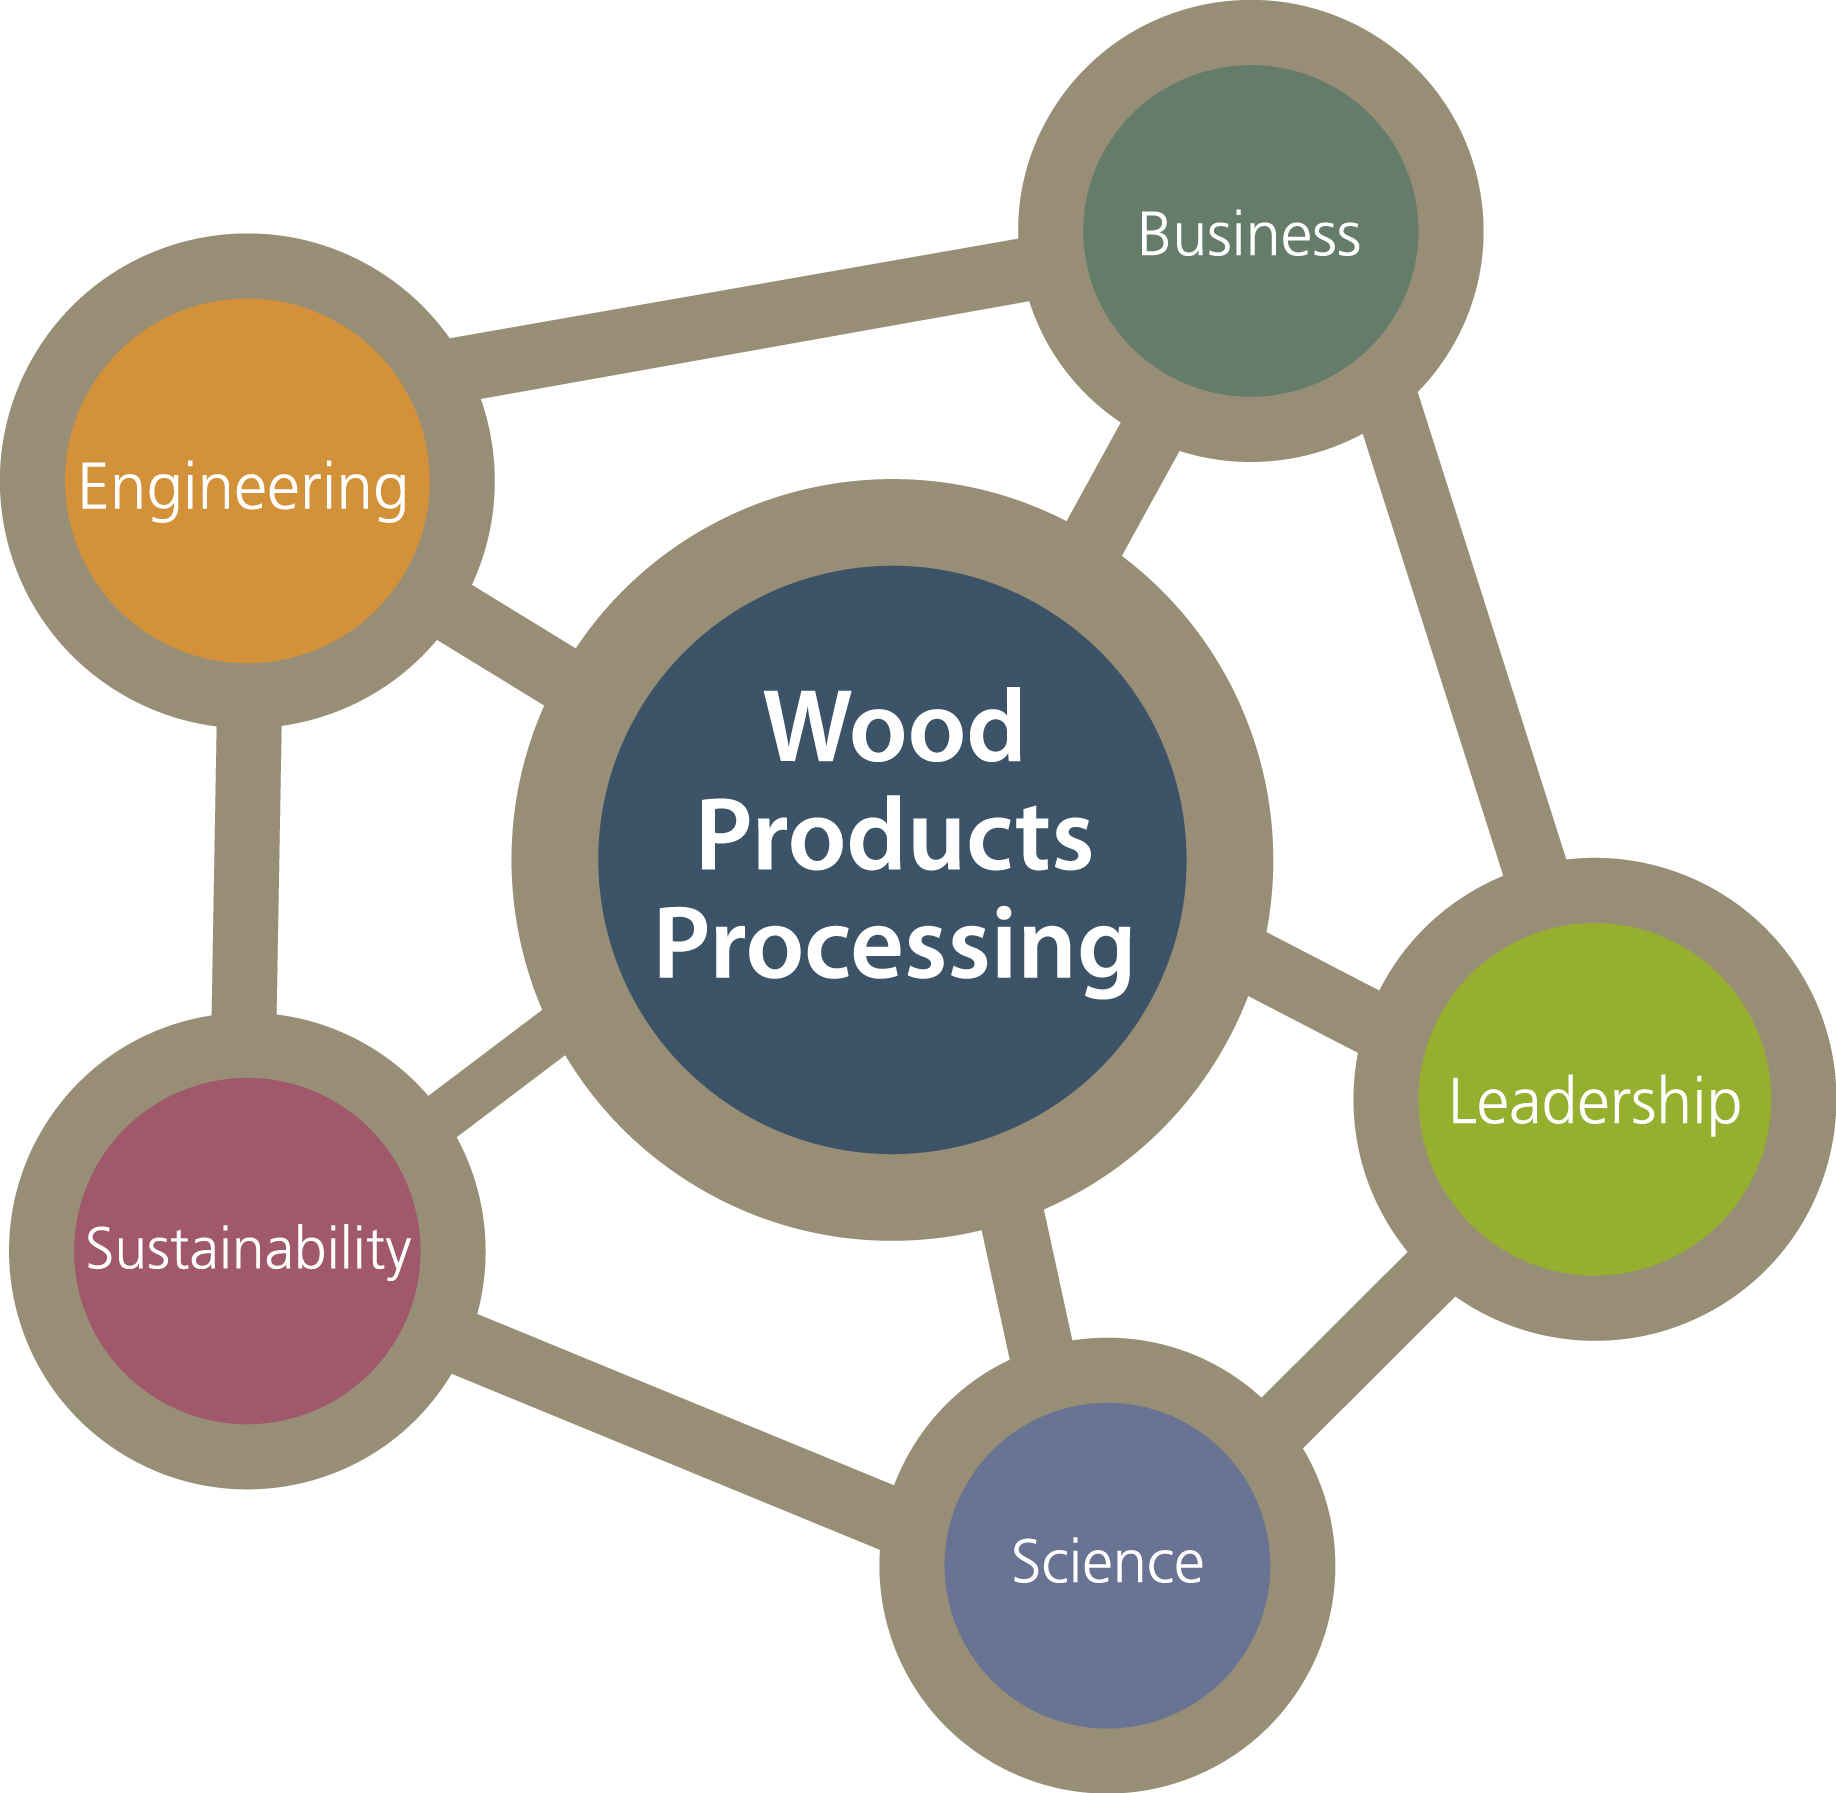 BSc Wood Products Processing